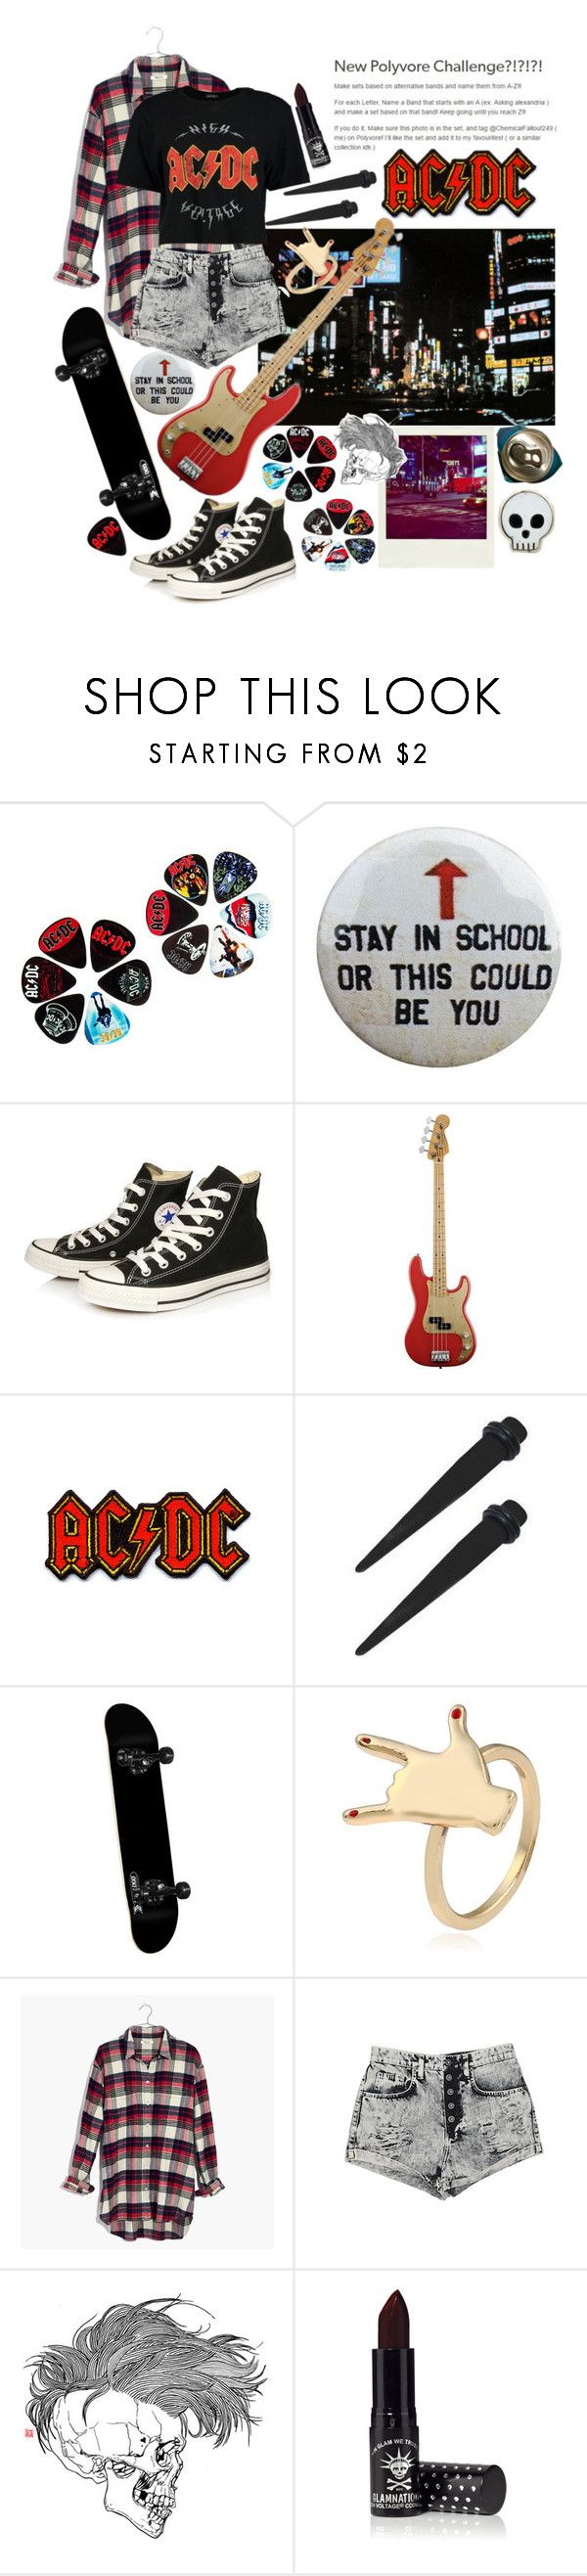 """ac/dc"" by voidman ❤ liked on Polyvore featuring Polaroid, AC/DC, Converse, DC Shoes, Madewell, Carmar and Manic Panic NYC"